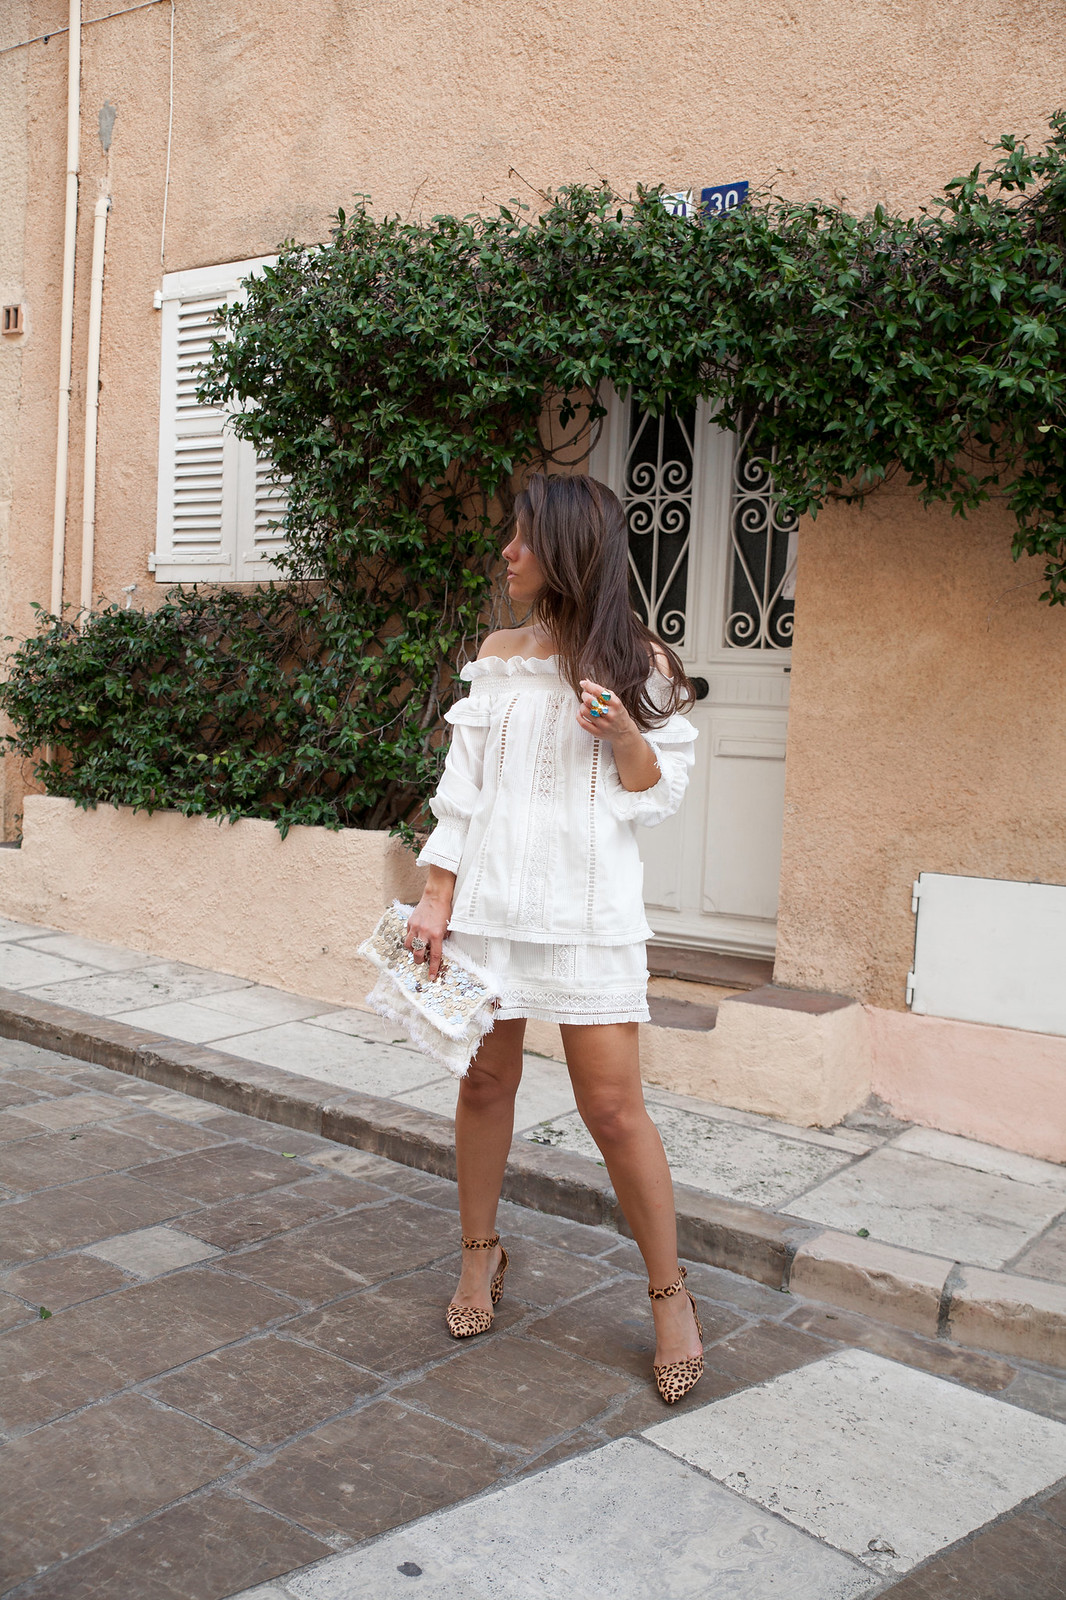 09_highly_preppy_theguestgirl_total_white_look_summer